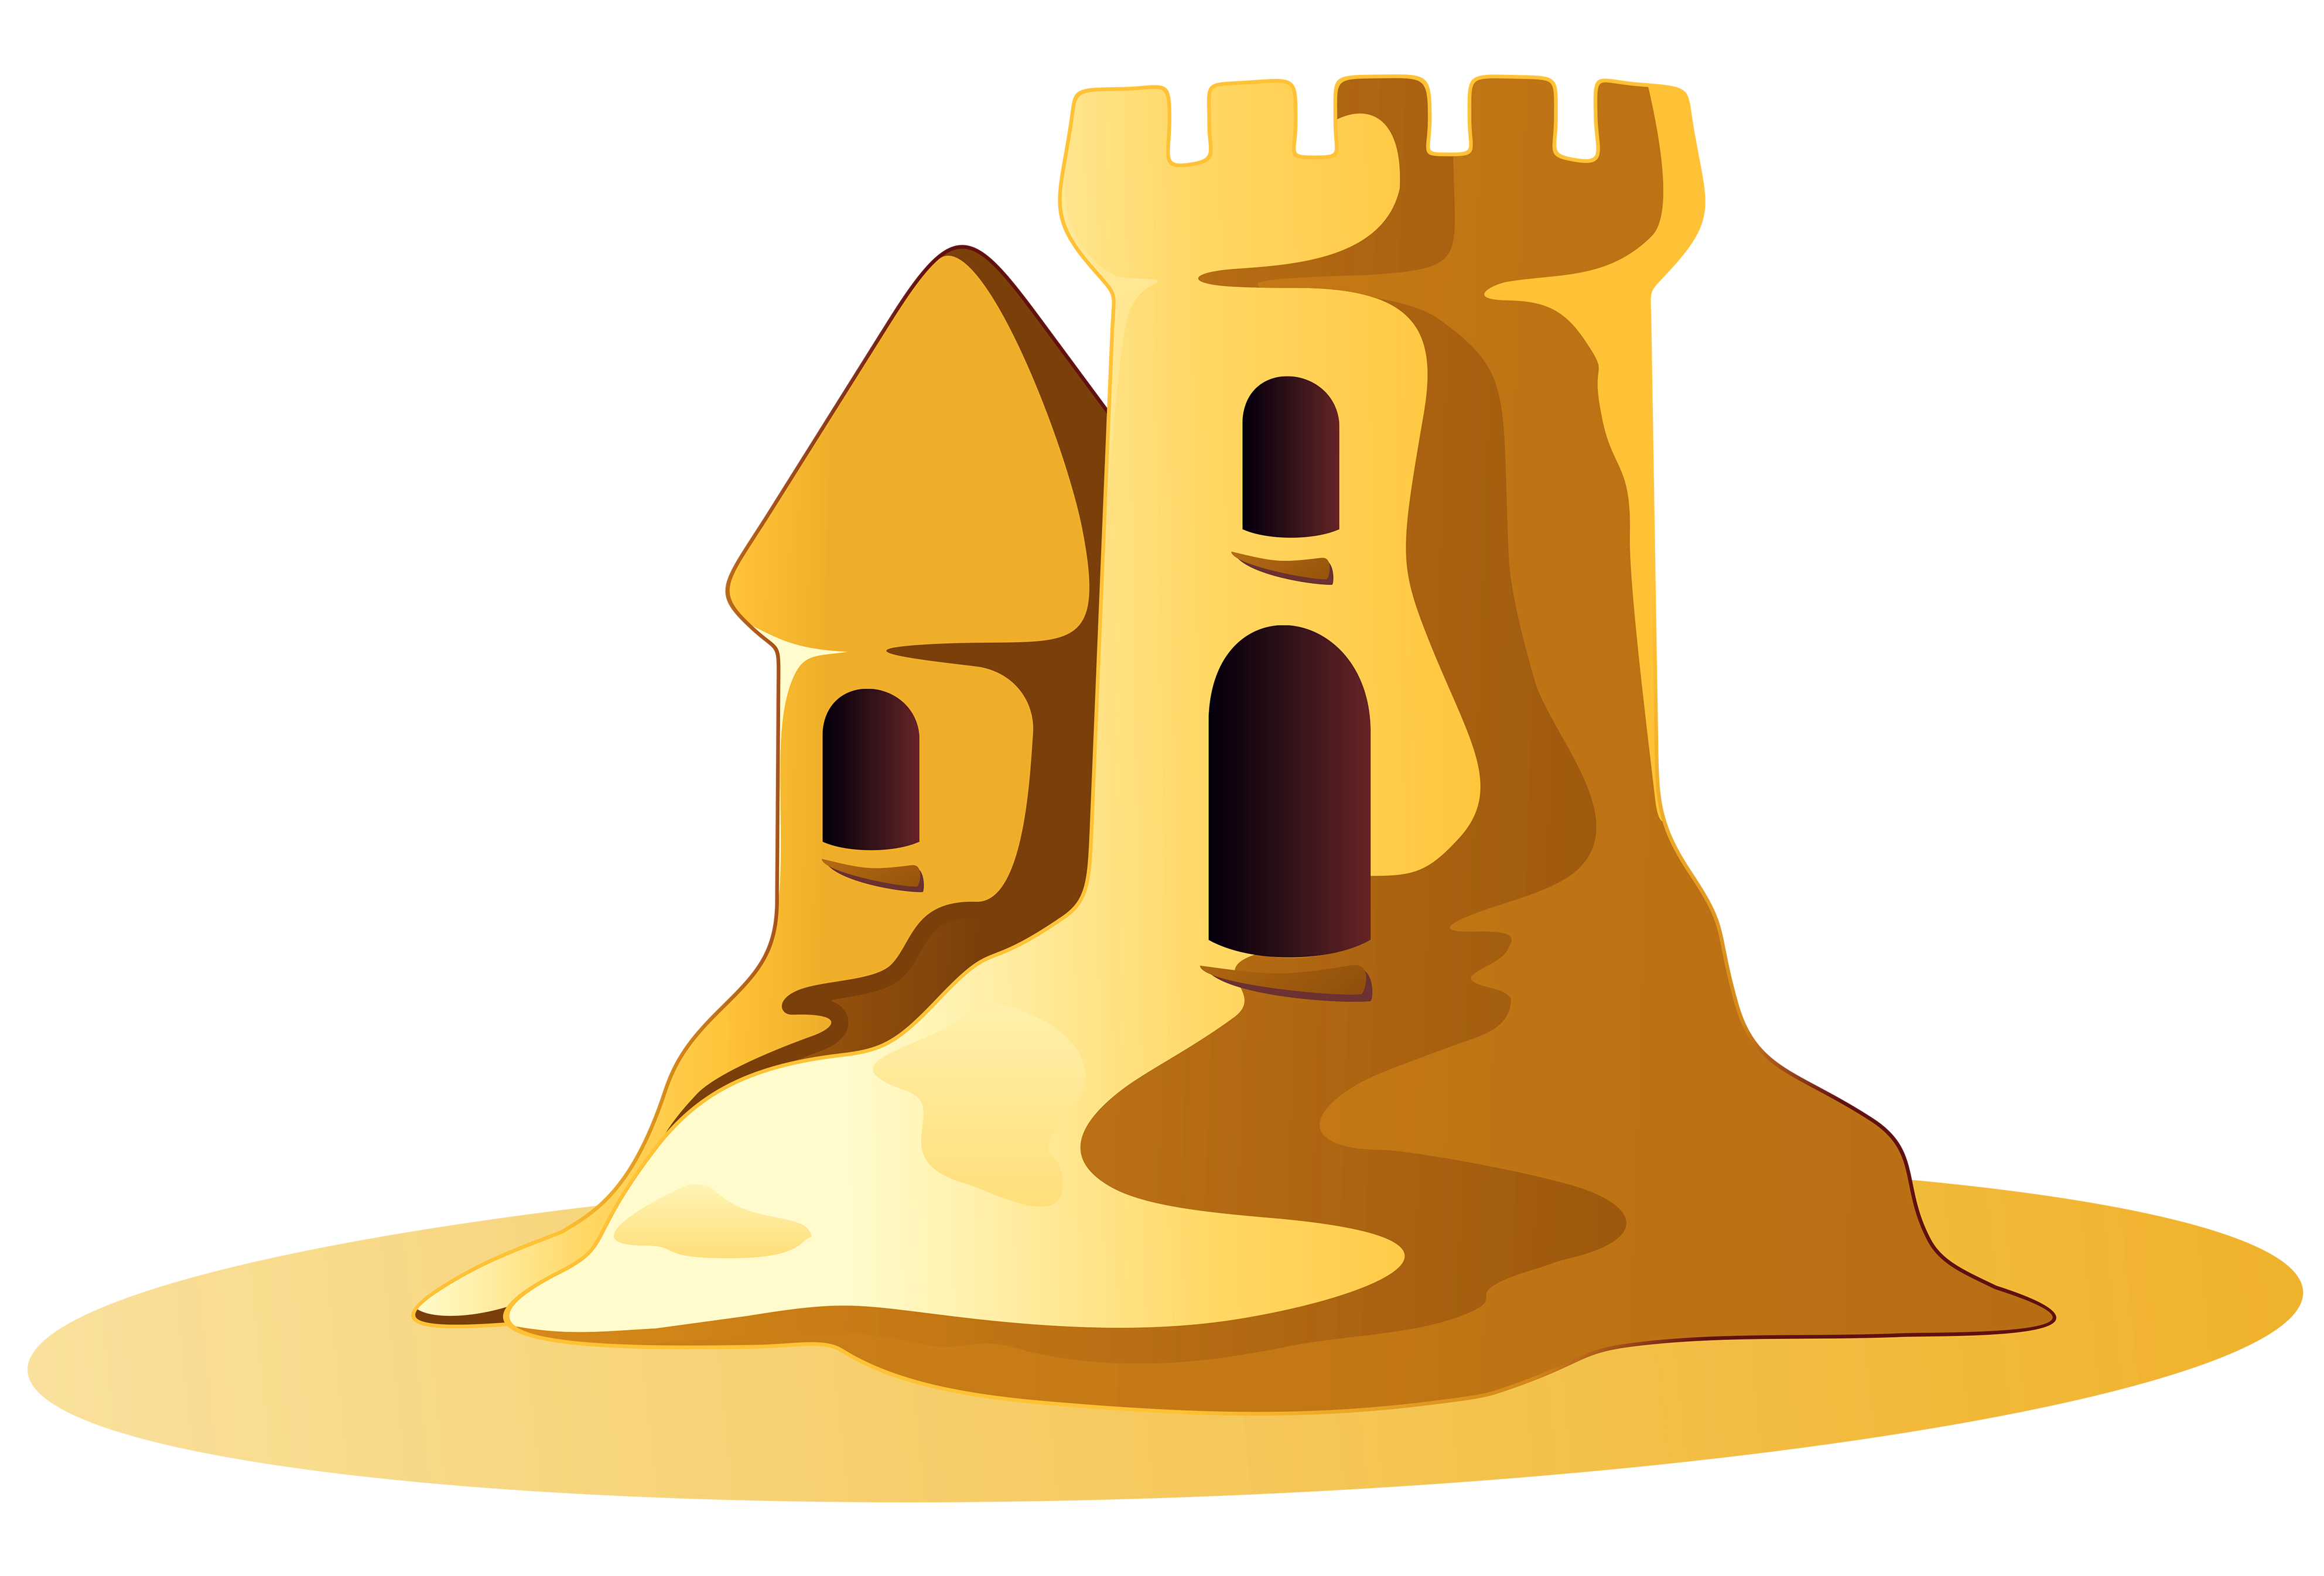 Coal clipart animated. Sand castle png gallery